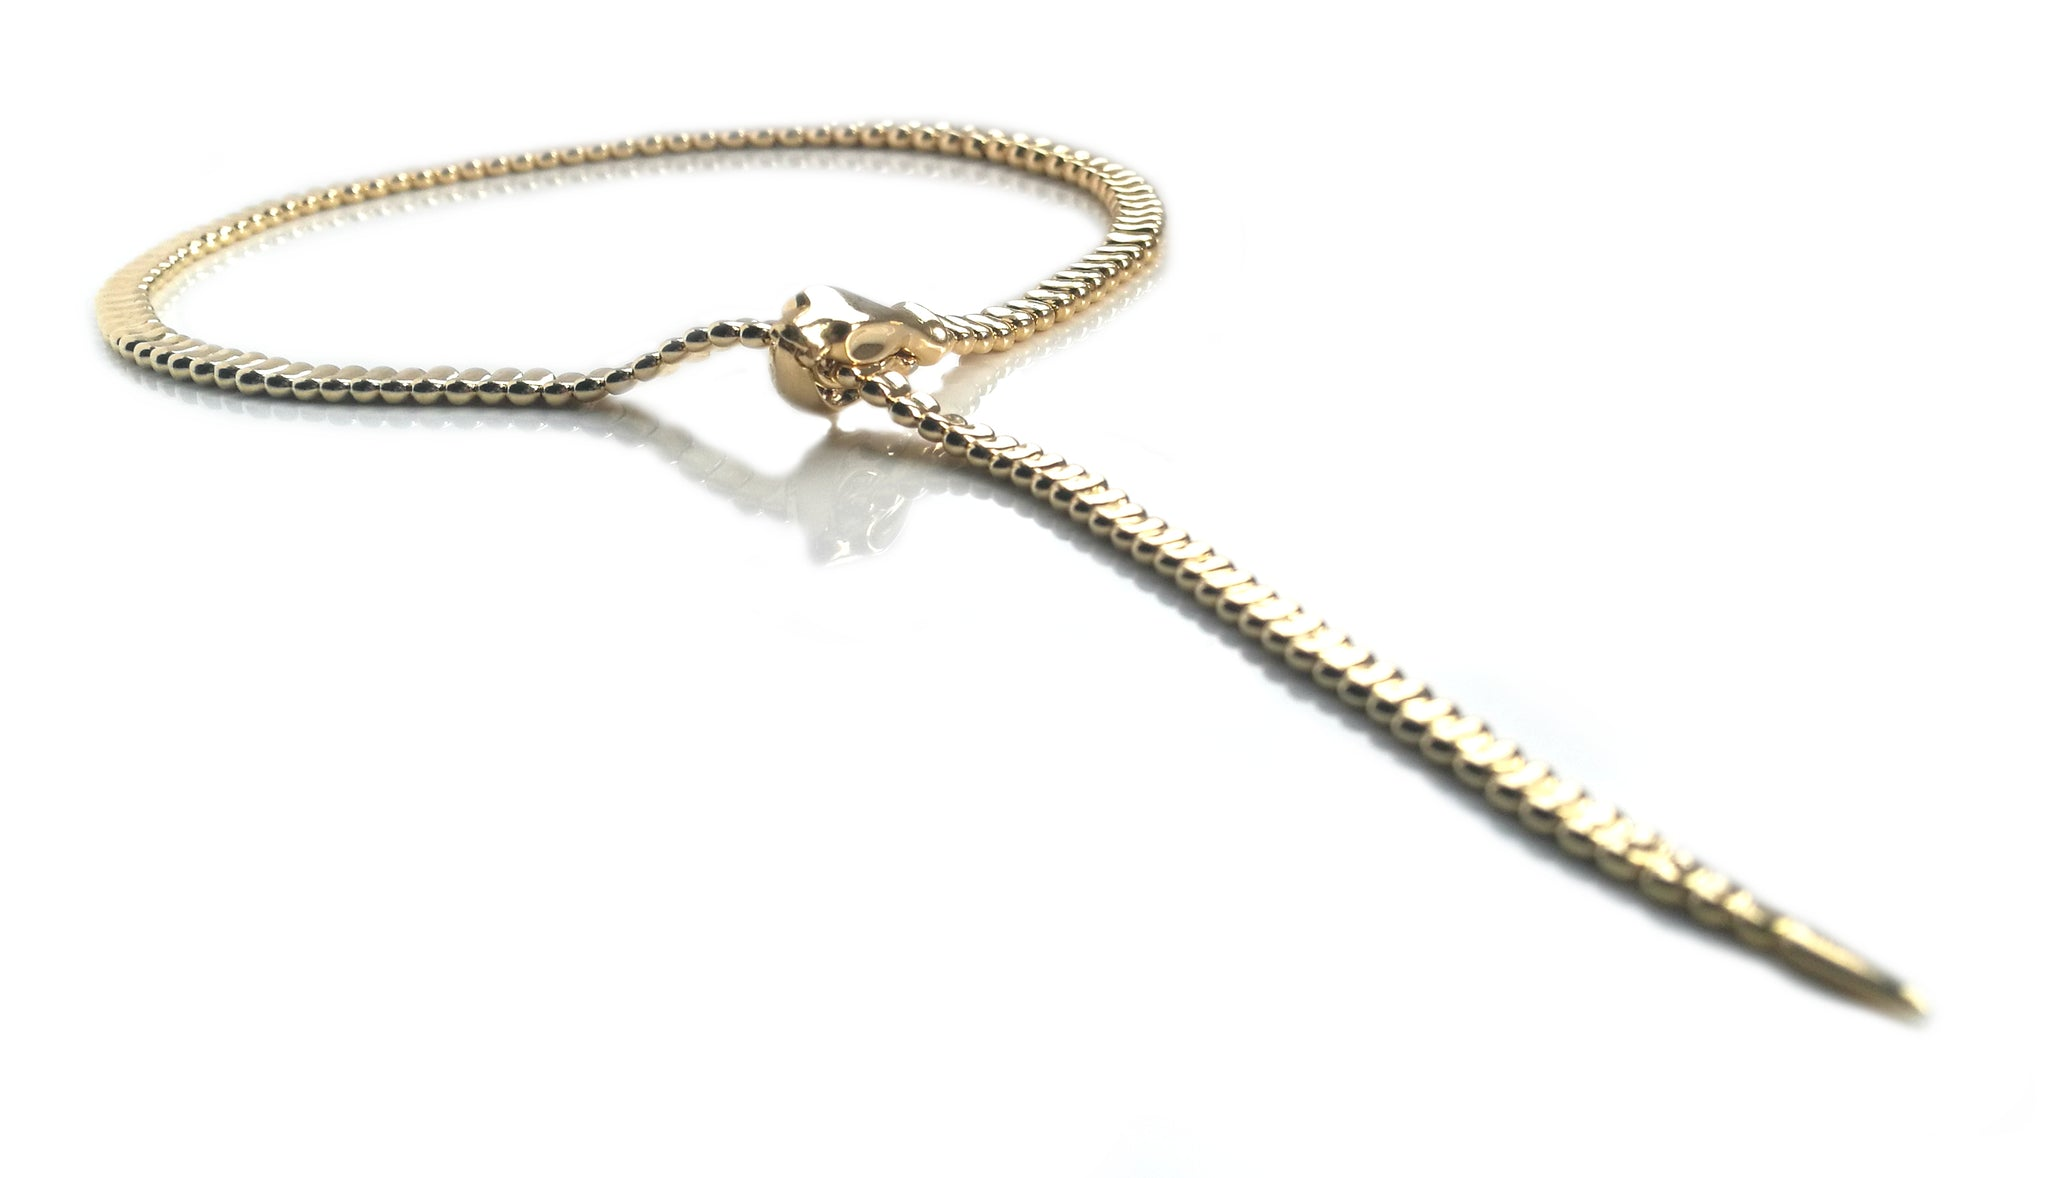 Tiffany & Co. Snake / Serpent Necklace in 18k Yellow Gold, 20 inch